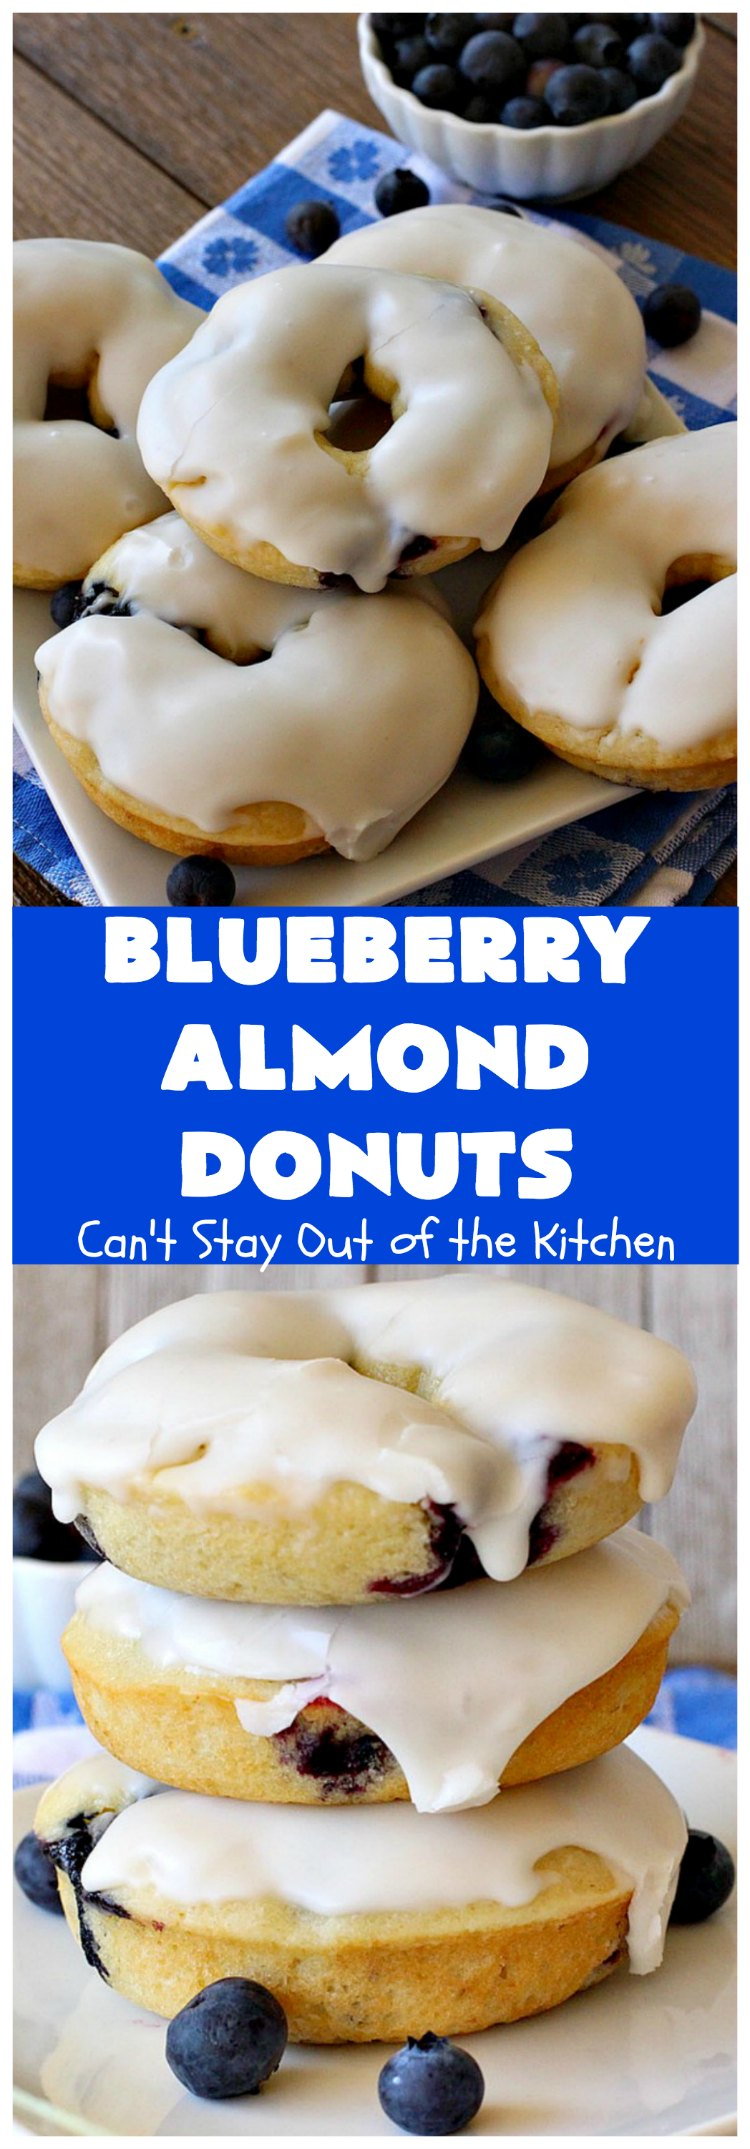 Blueberry Almond Donuts | Can't Stay Out of the Kitchen